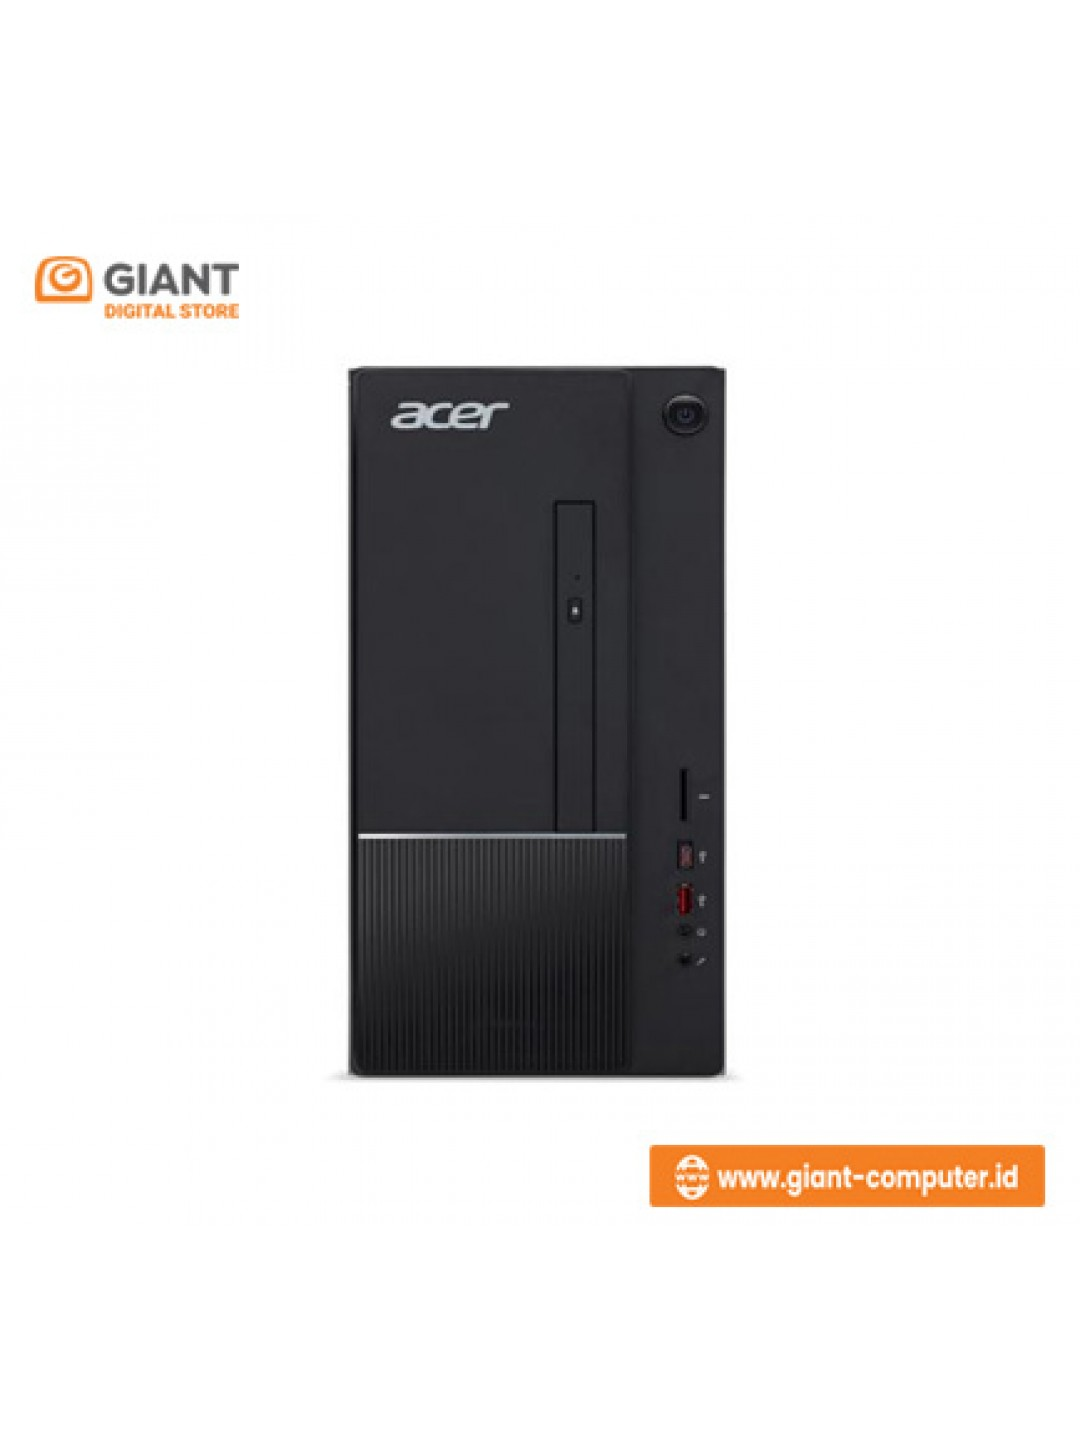 "PC ACER ATC 860 (I7-8700 / 8GB / 1TB / VGA 2GB / 19.5"" / WIN10)"